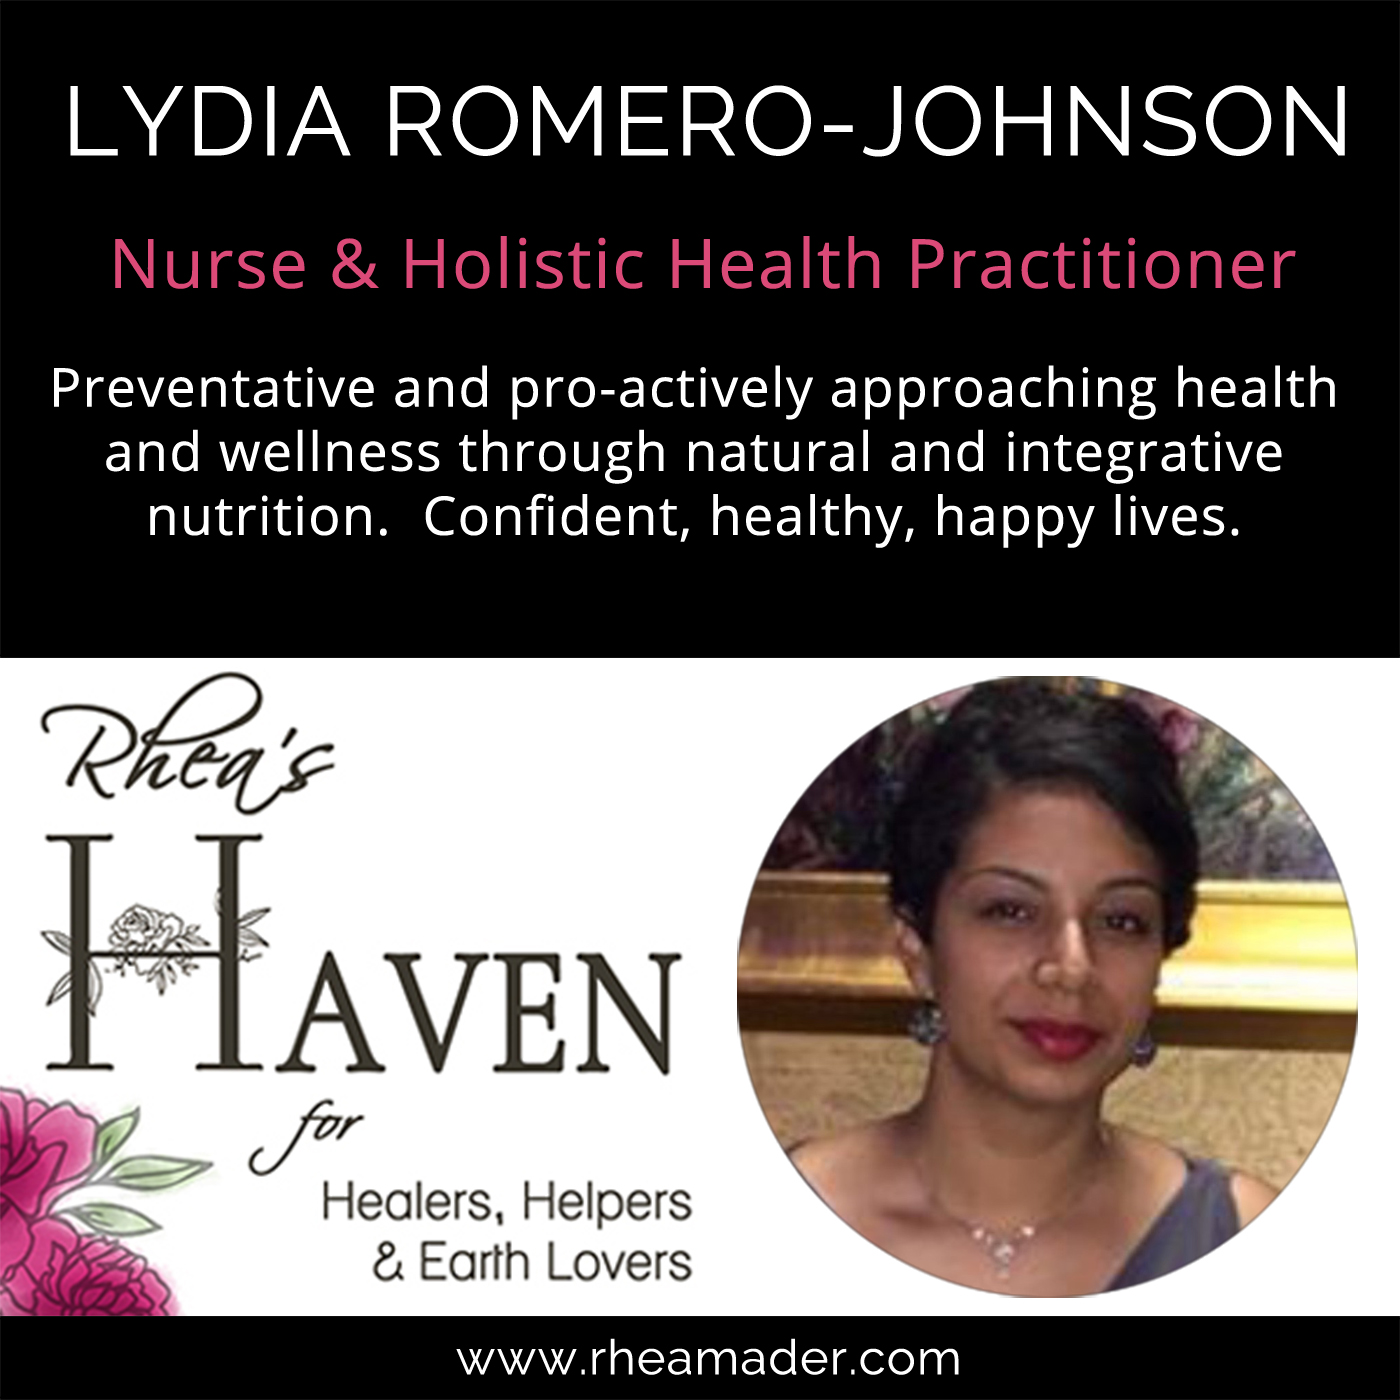 LYDIA ROMERO-JOHNSON:  Nurse, Intigrative Nutrition Expert & Autoimmune Thriver